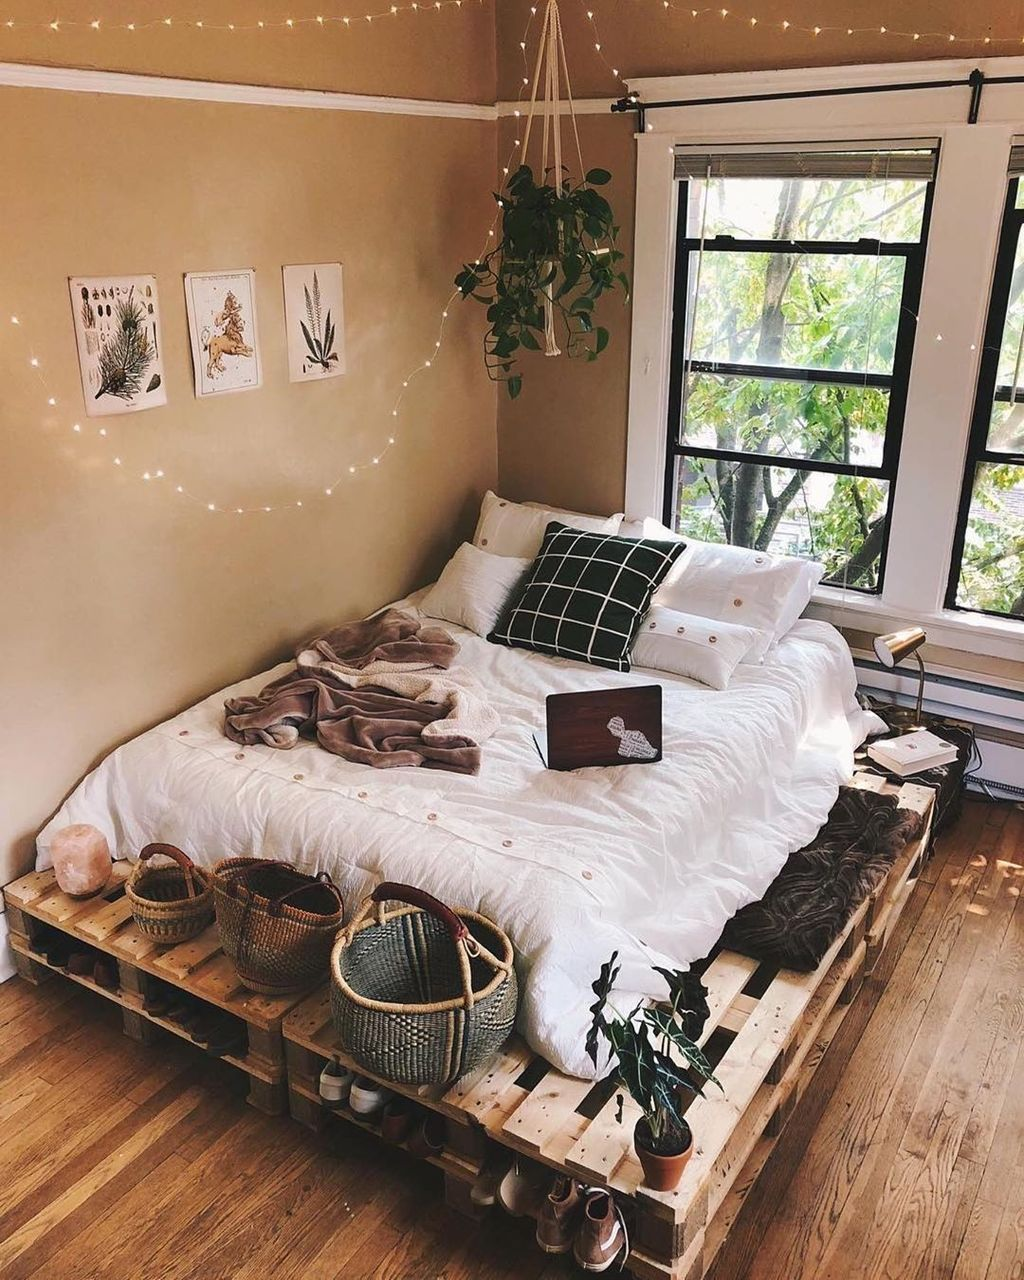 38 Gorgeous Bohemian Bedroom Decor Ideas #bohemian Bedroom 38 Gorgeous Bohemian Bedroom Decor Ideas #bohemianbedrooms